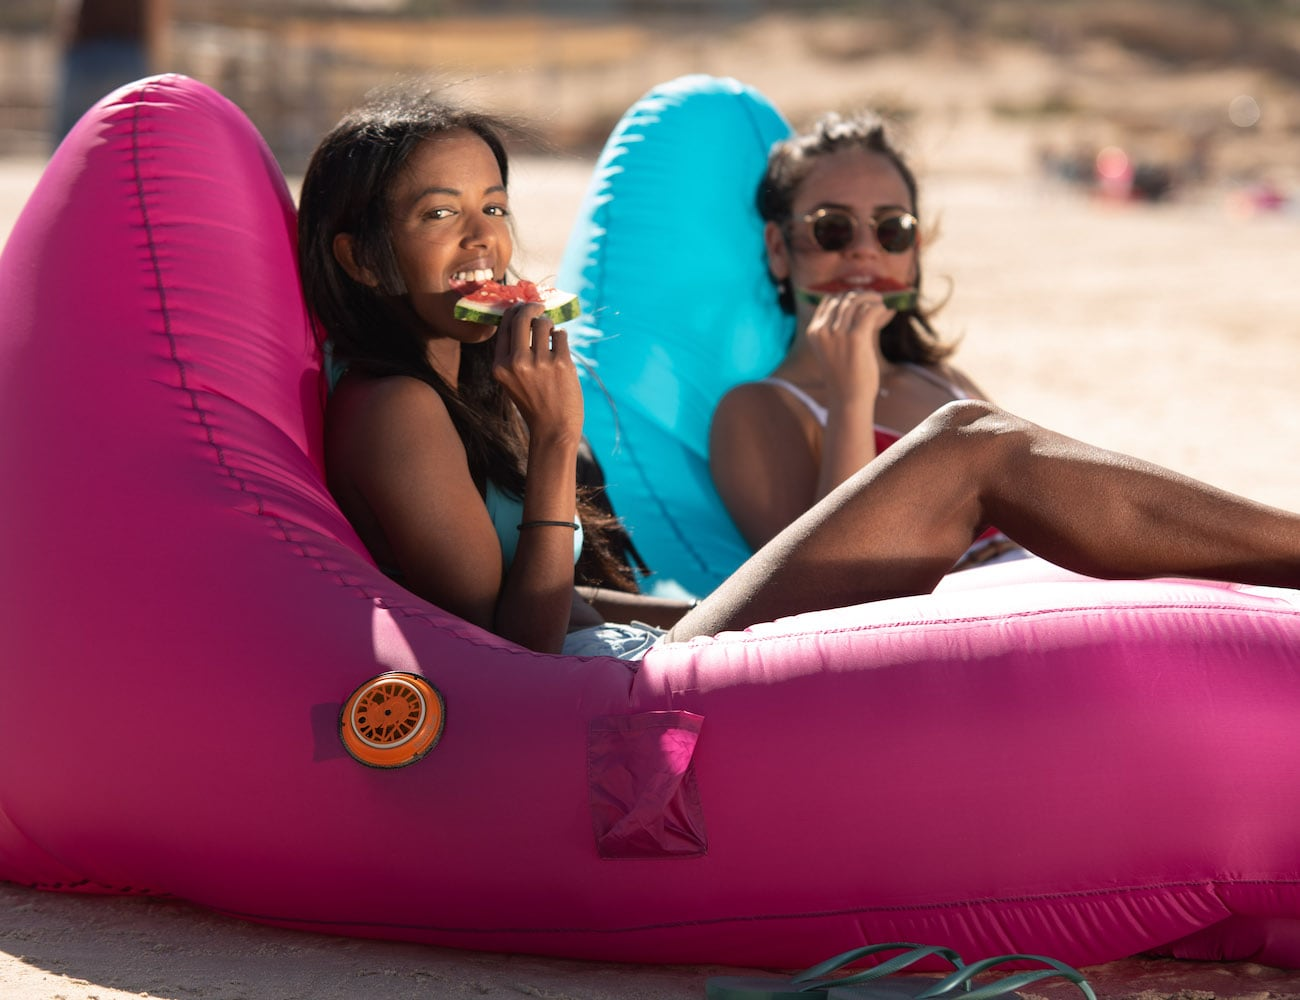 AirThrone Premium Auto-Pump Air Lounger inflates in only 90 seconds